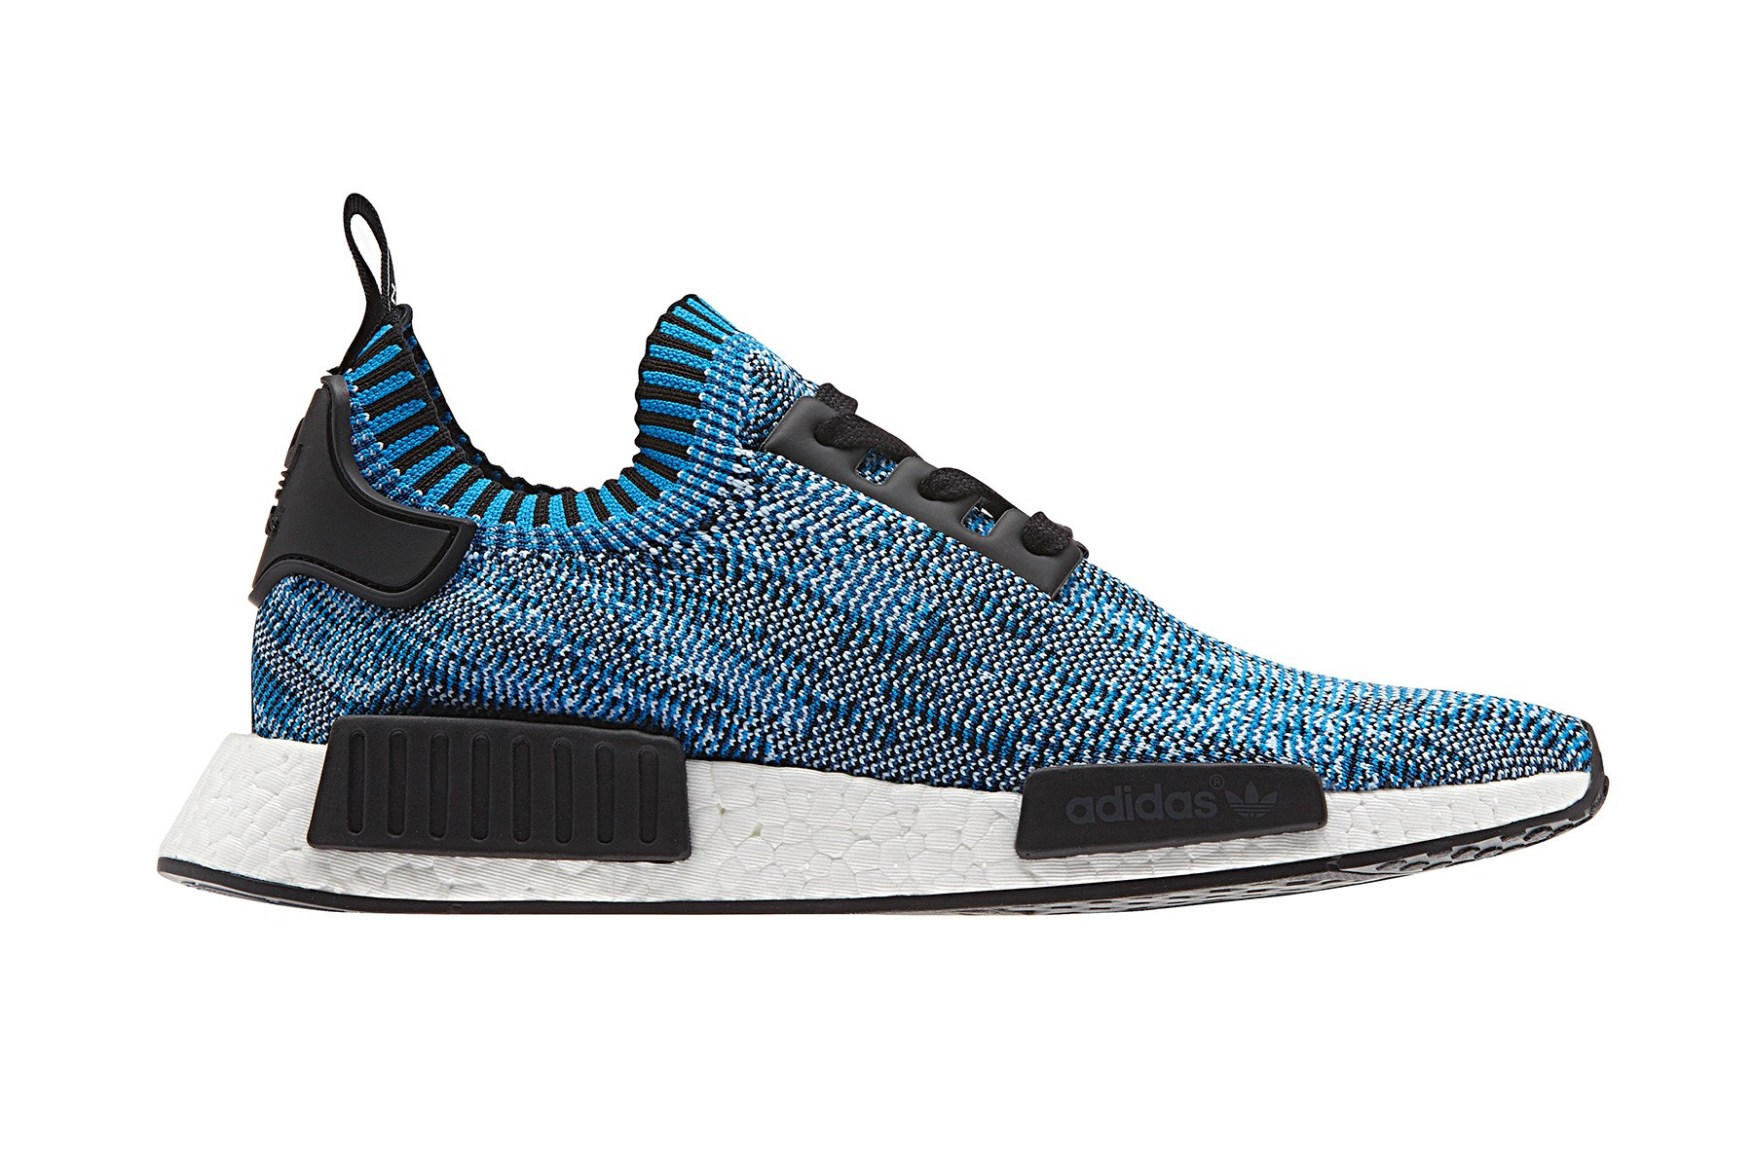 NMD R1(grey silver) Truth Boost S76004 $85 from lucus yeezy